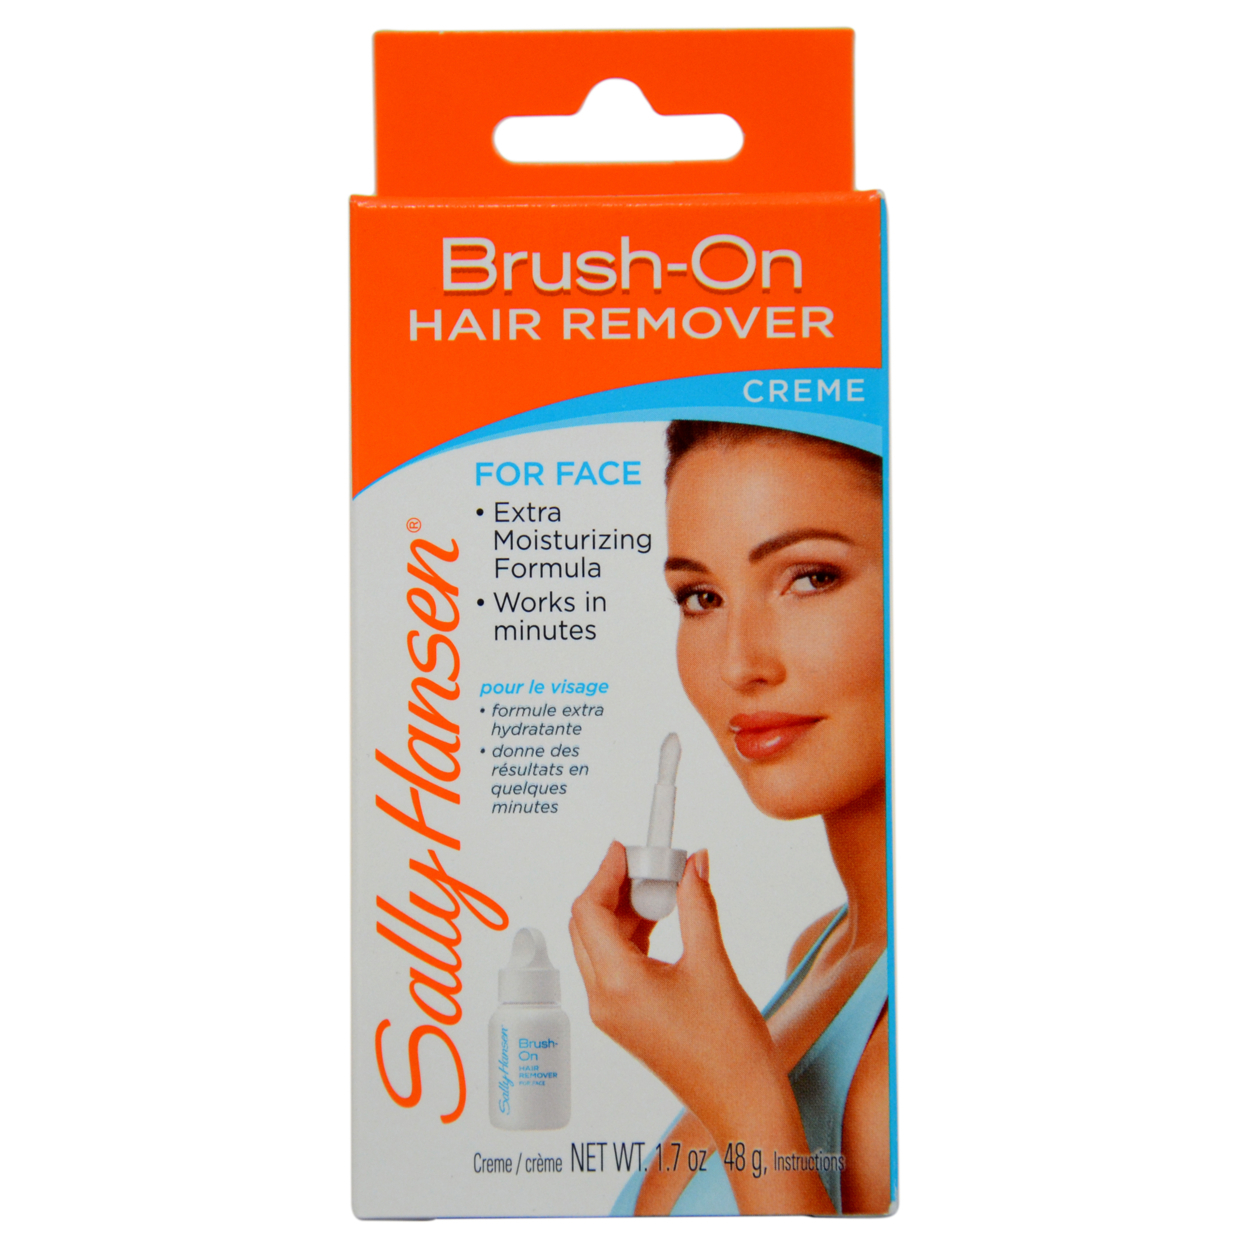 Pain Free Brush On Hair Remover Creme For Face Extra Moisturizing by Sally Hansen for Women - 1 Pack Hair remover 5898e1d0c98fc4508f3b701e